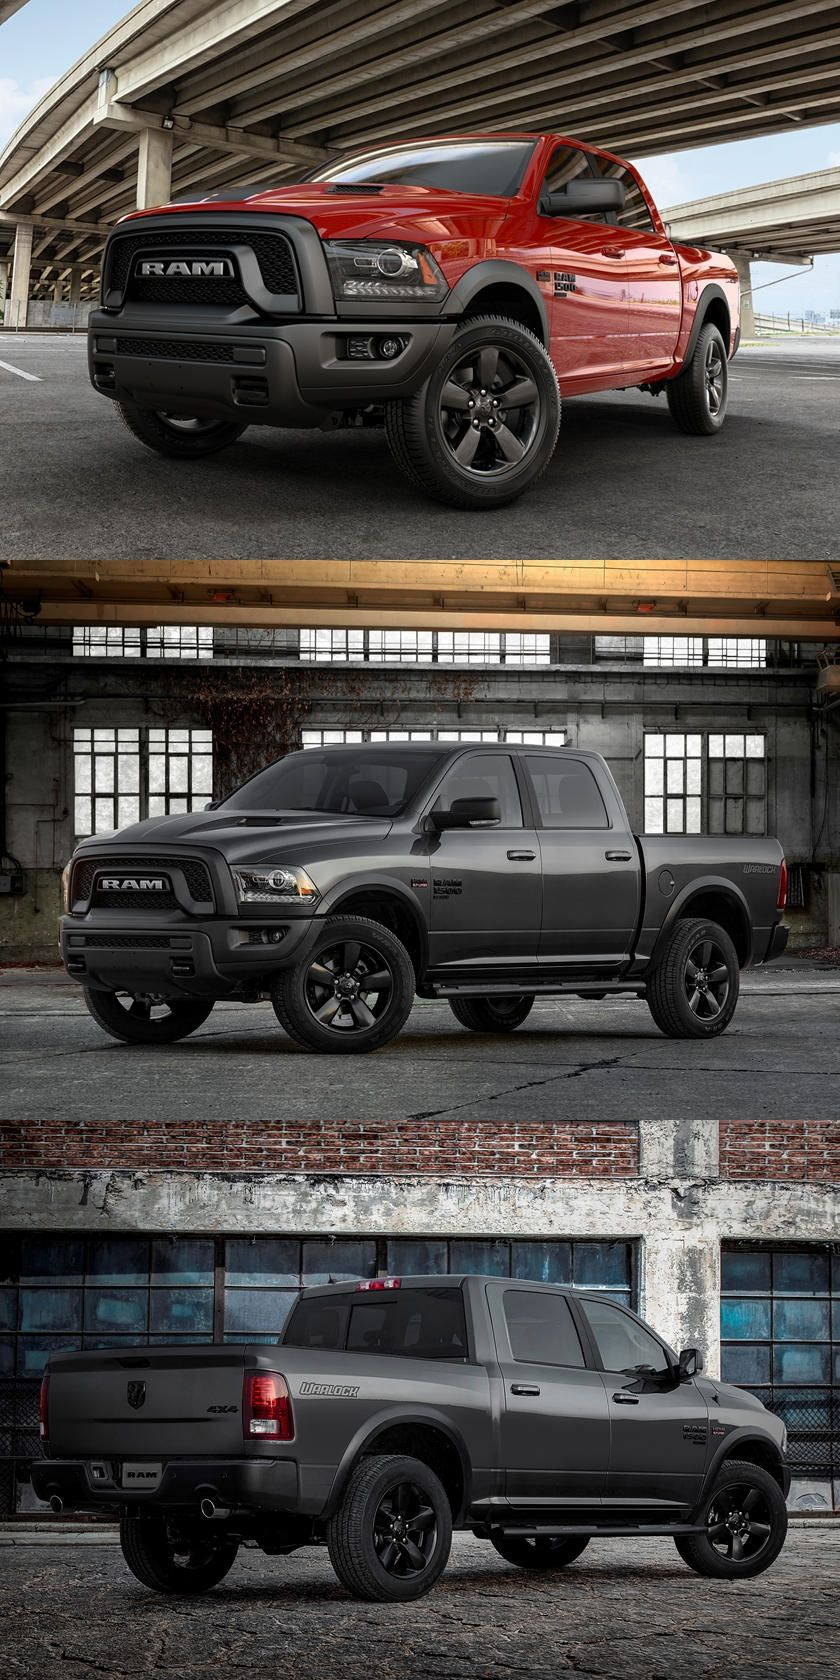 Chevy And Ford S Ram Truck Problem Just Got Bigger The Latest Sales Data Paints A New Picture In 2020 Ram Trucks Chevy Trucks